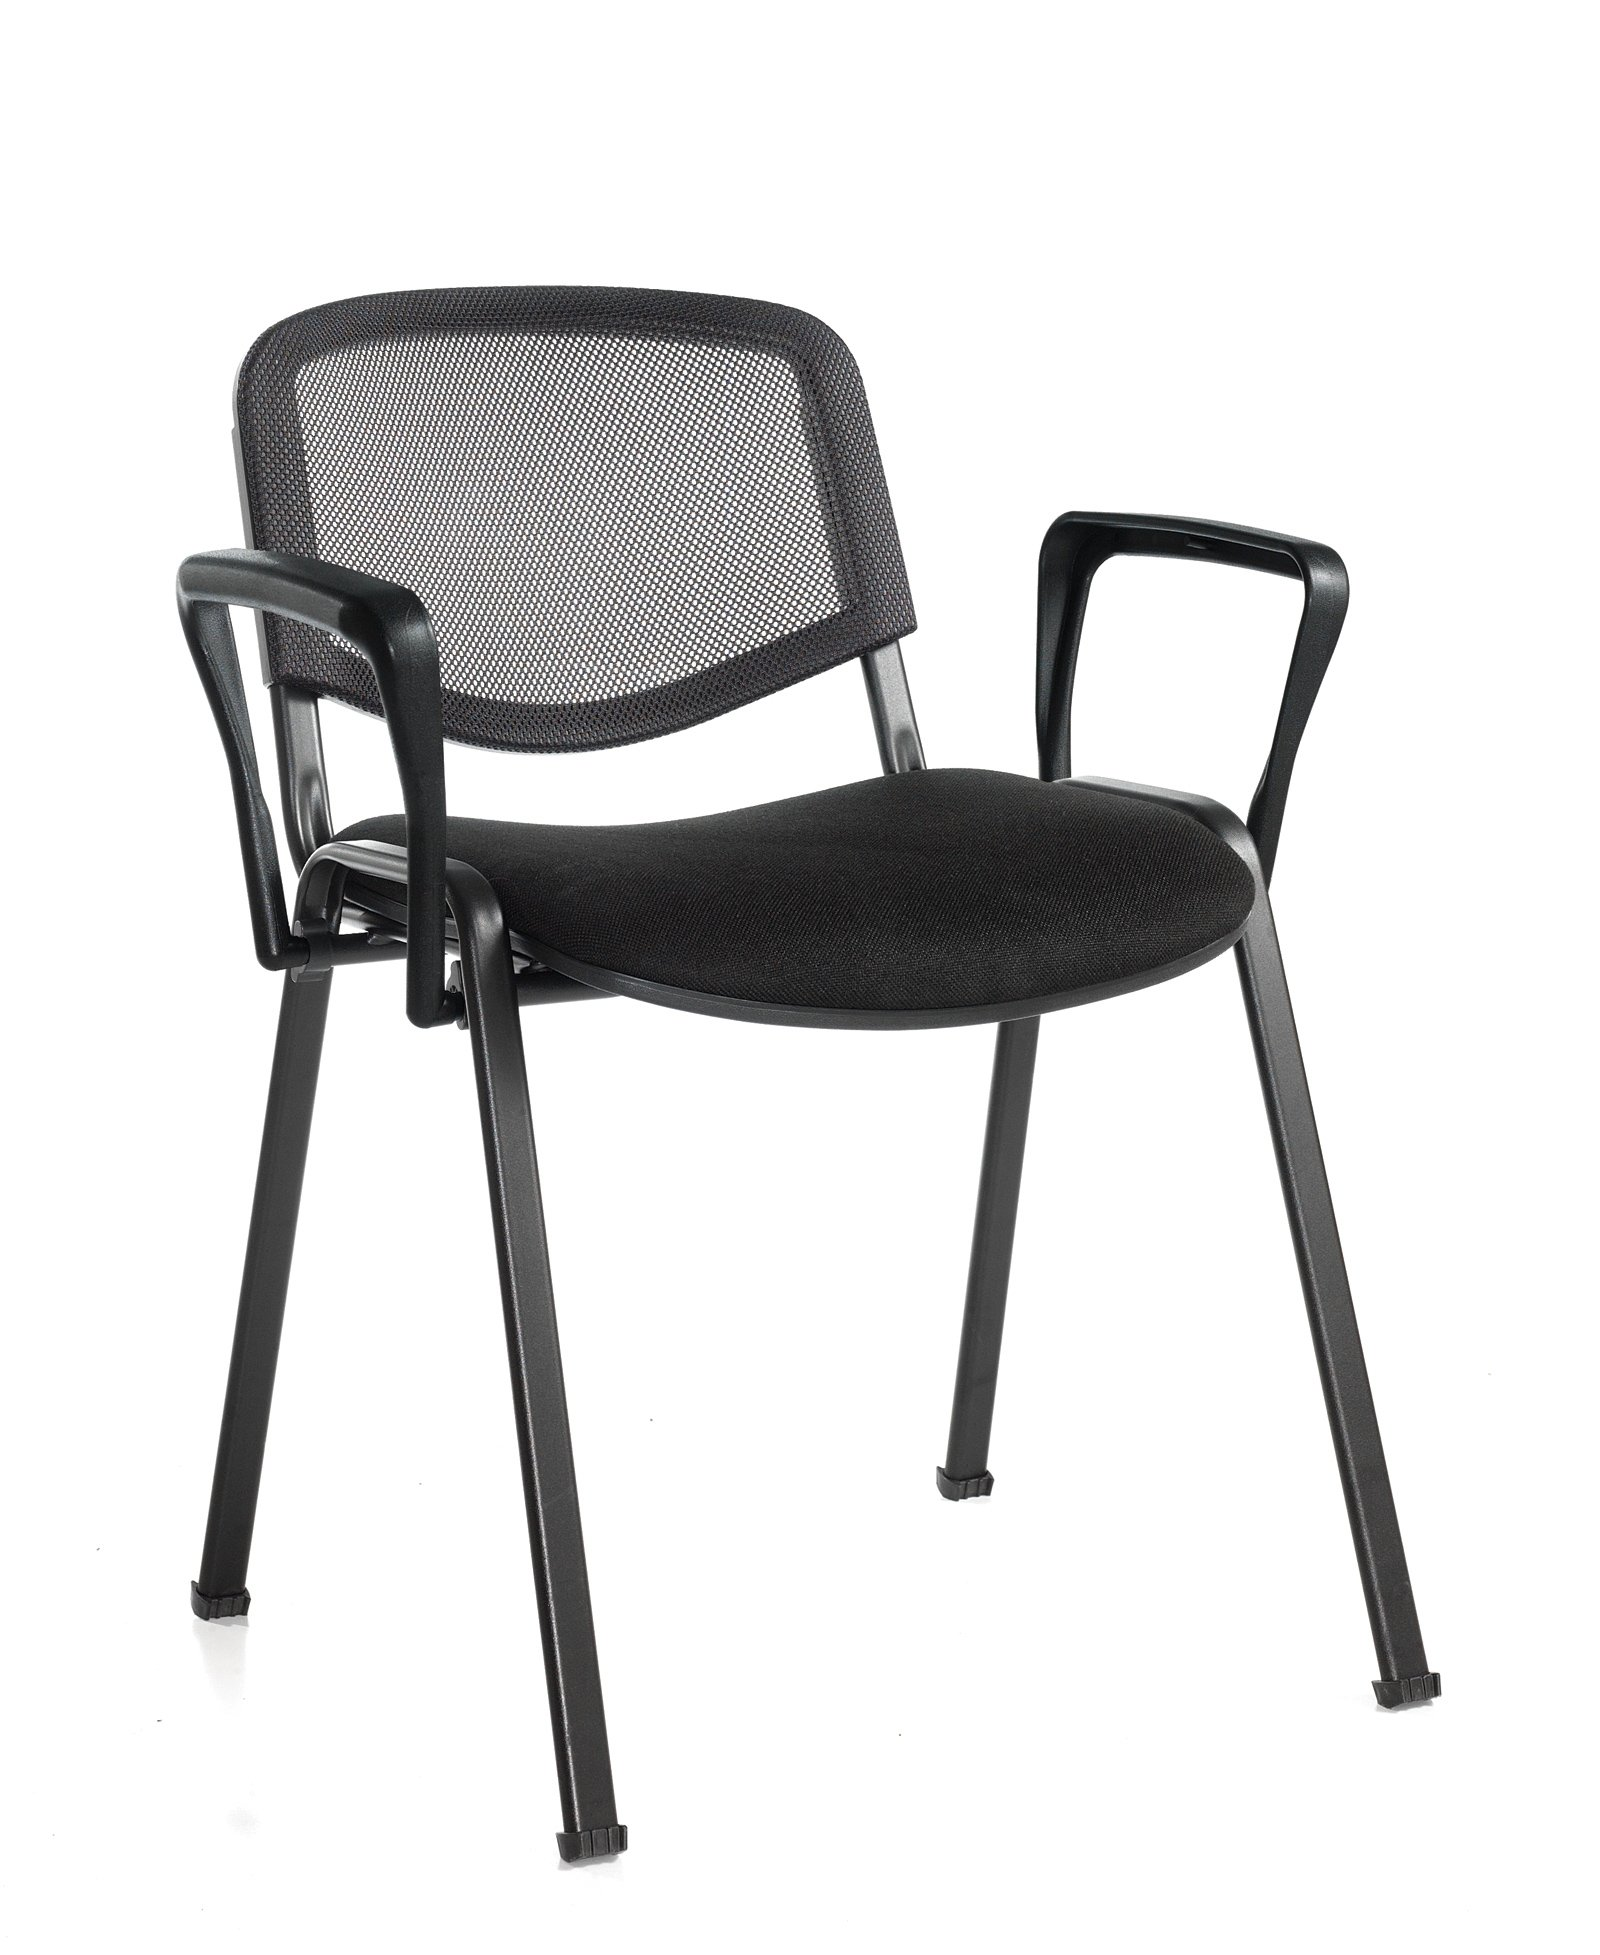 Taurus Mesh Stacking Chair With Arms Price Per Box Of 4